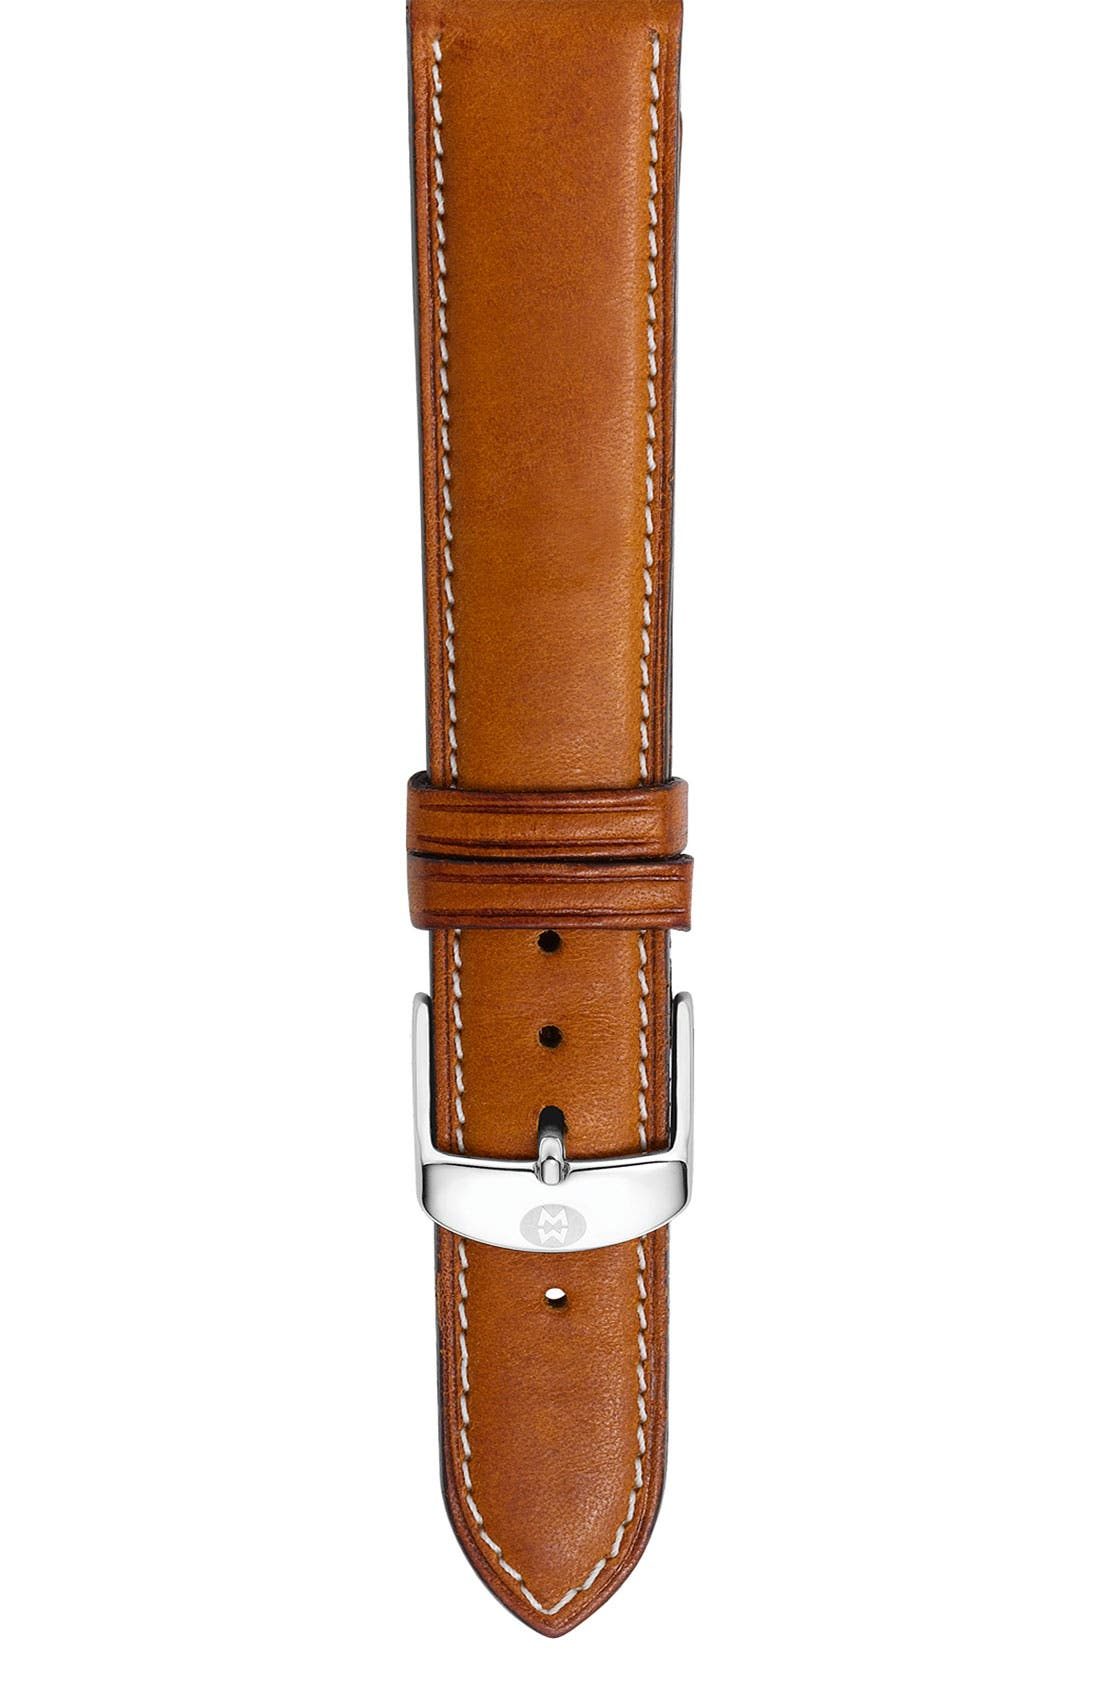 MICHELE 16mm Calfskin Leather Watch Strap